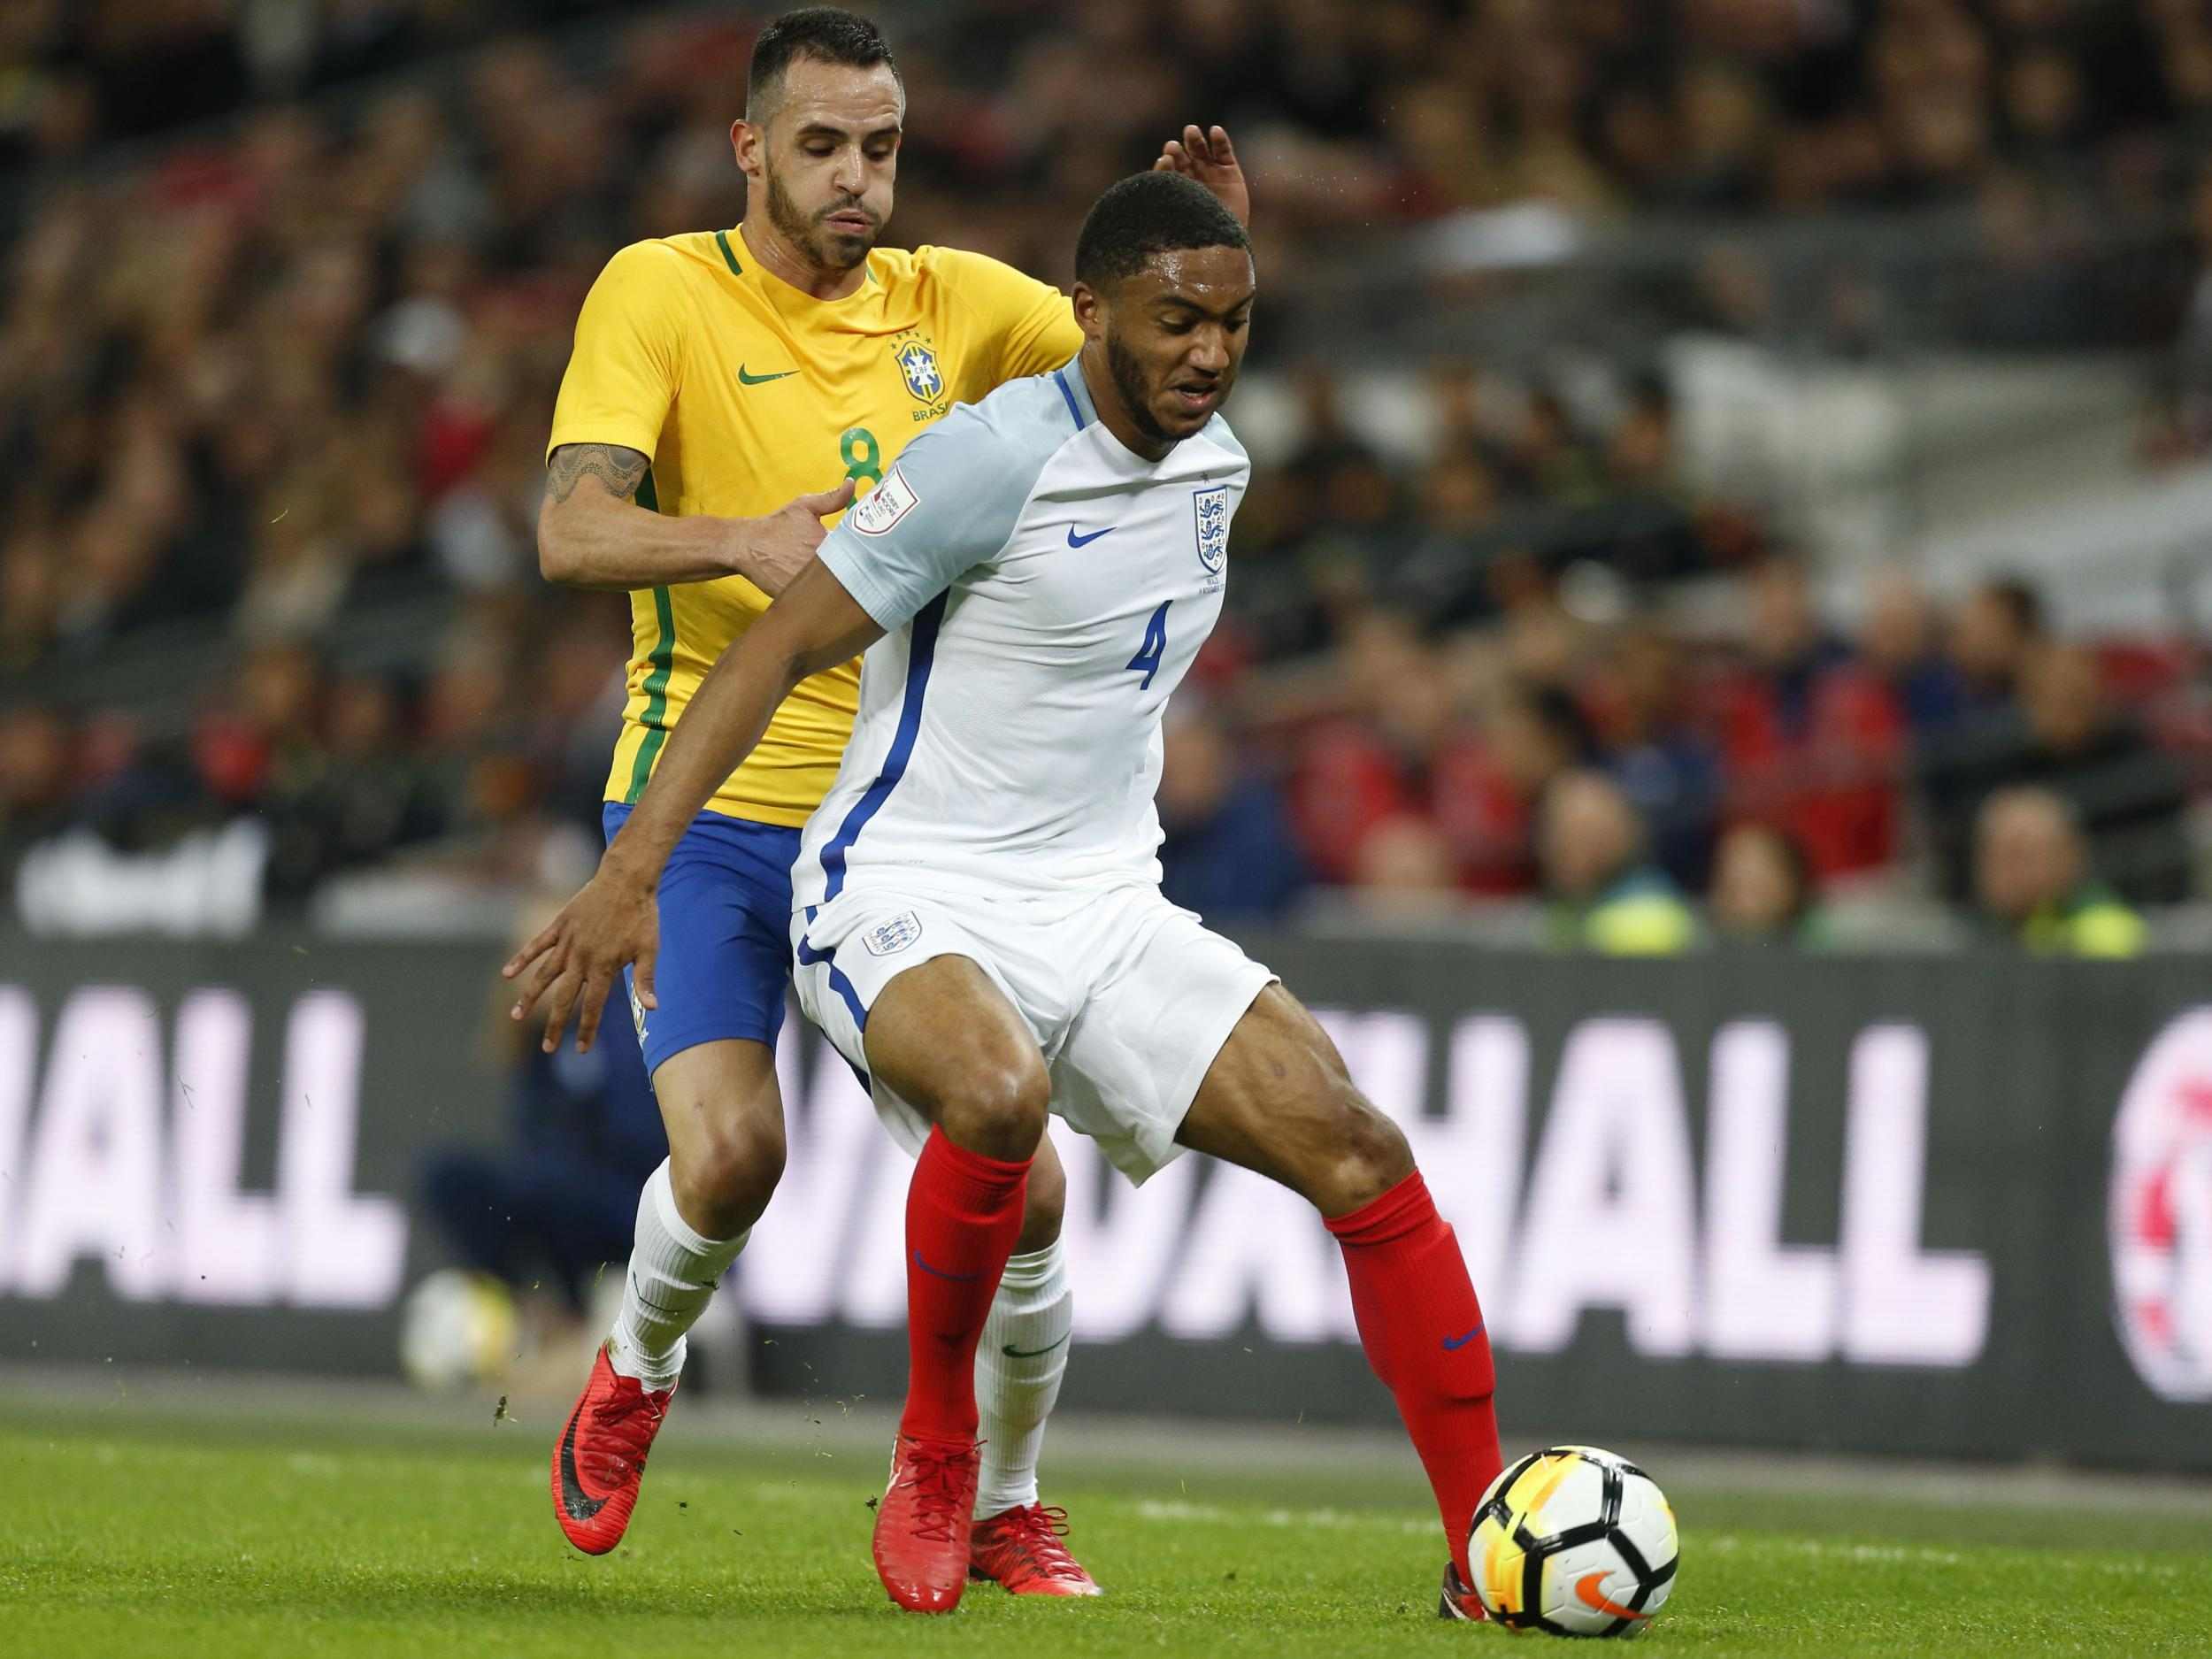 Gareth Southgate admits Liverpool defender Joe Gomez has given him 'plenty to think about' for England